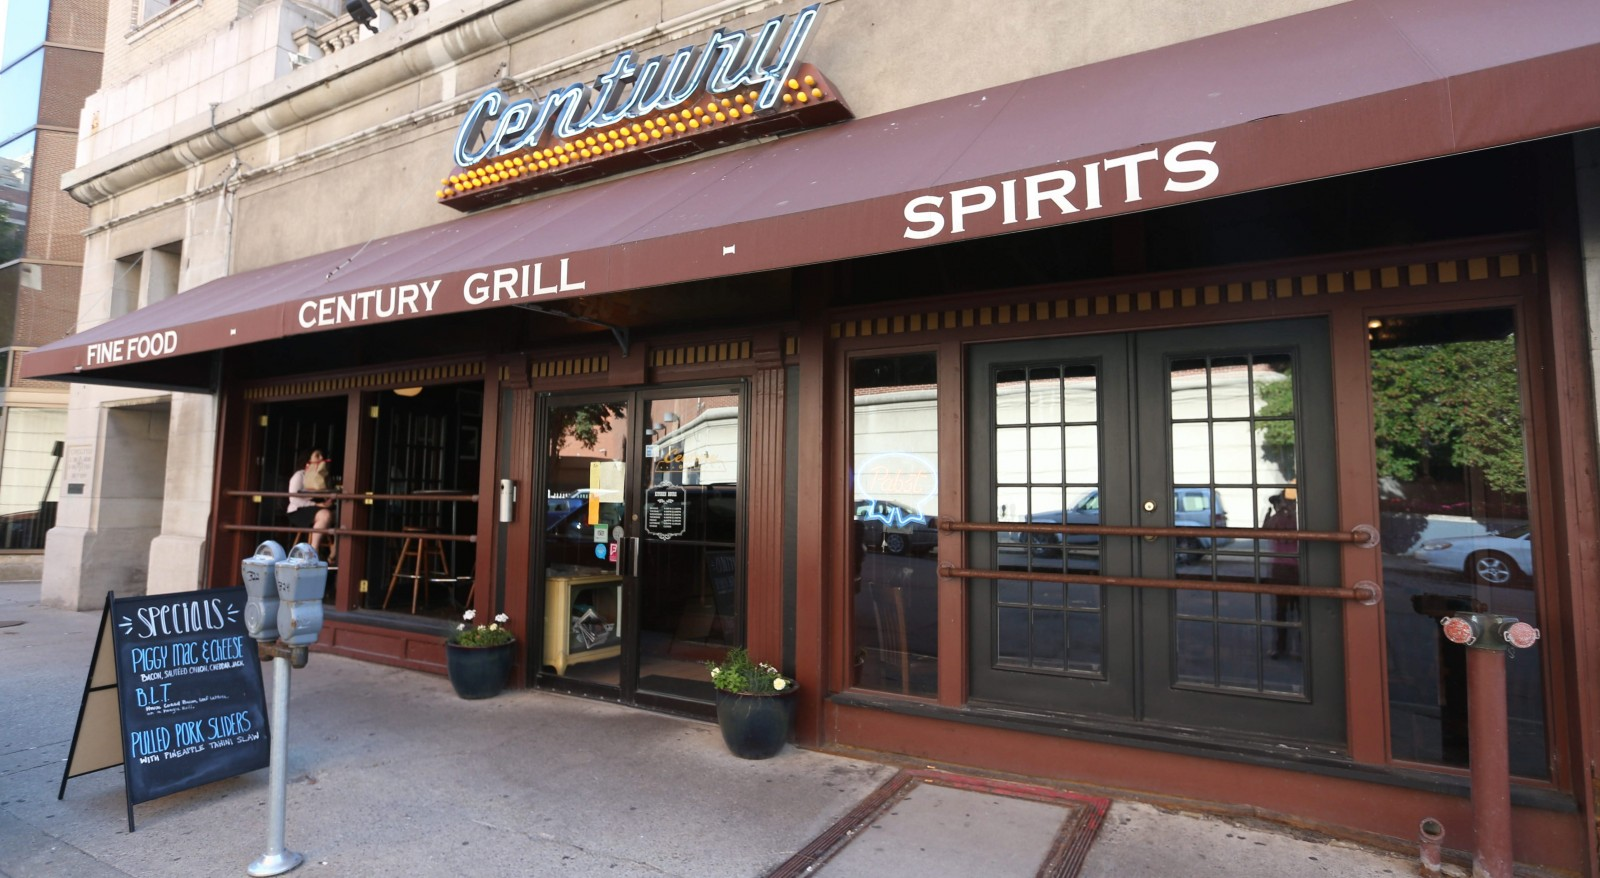 The Century Grill, at 318 Pearl St., will close. (Sharon Cantillon/Buffalo News)